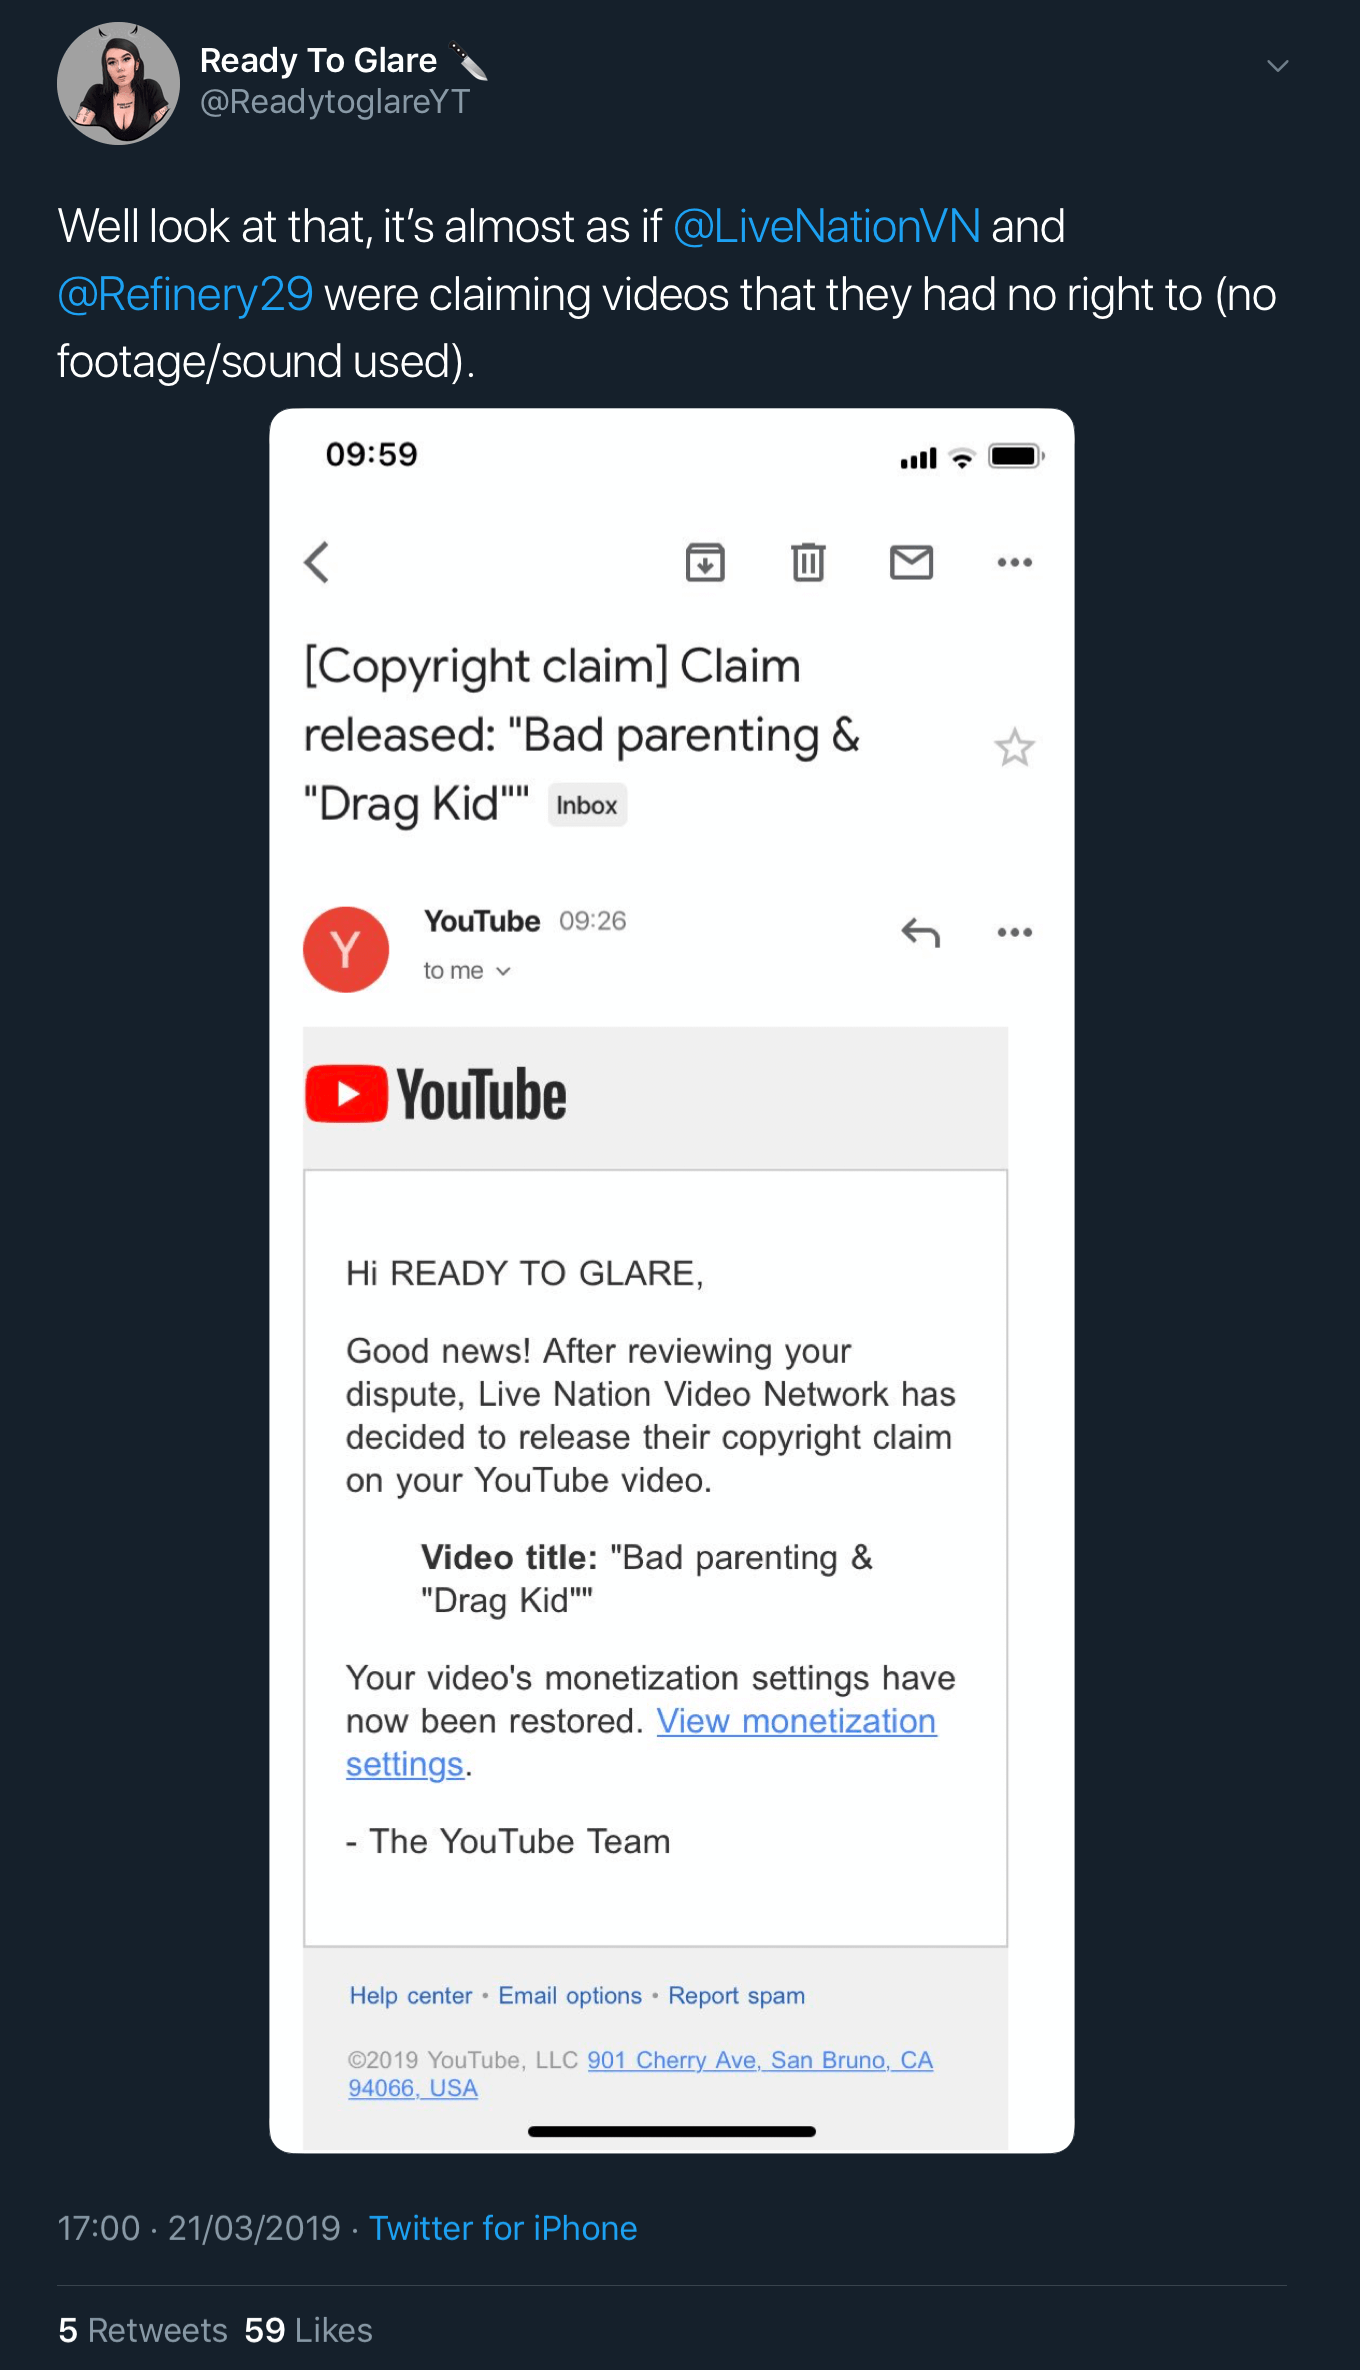 A tweet showing that the fake copyright claims against Ready To Glare's video have been dropped.